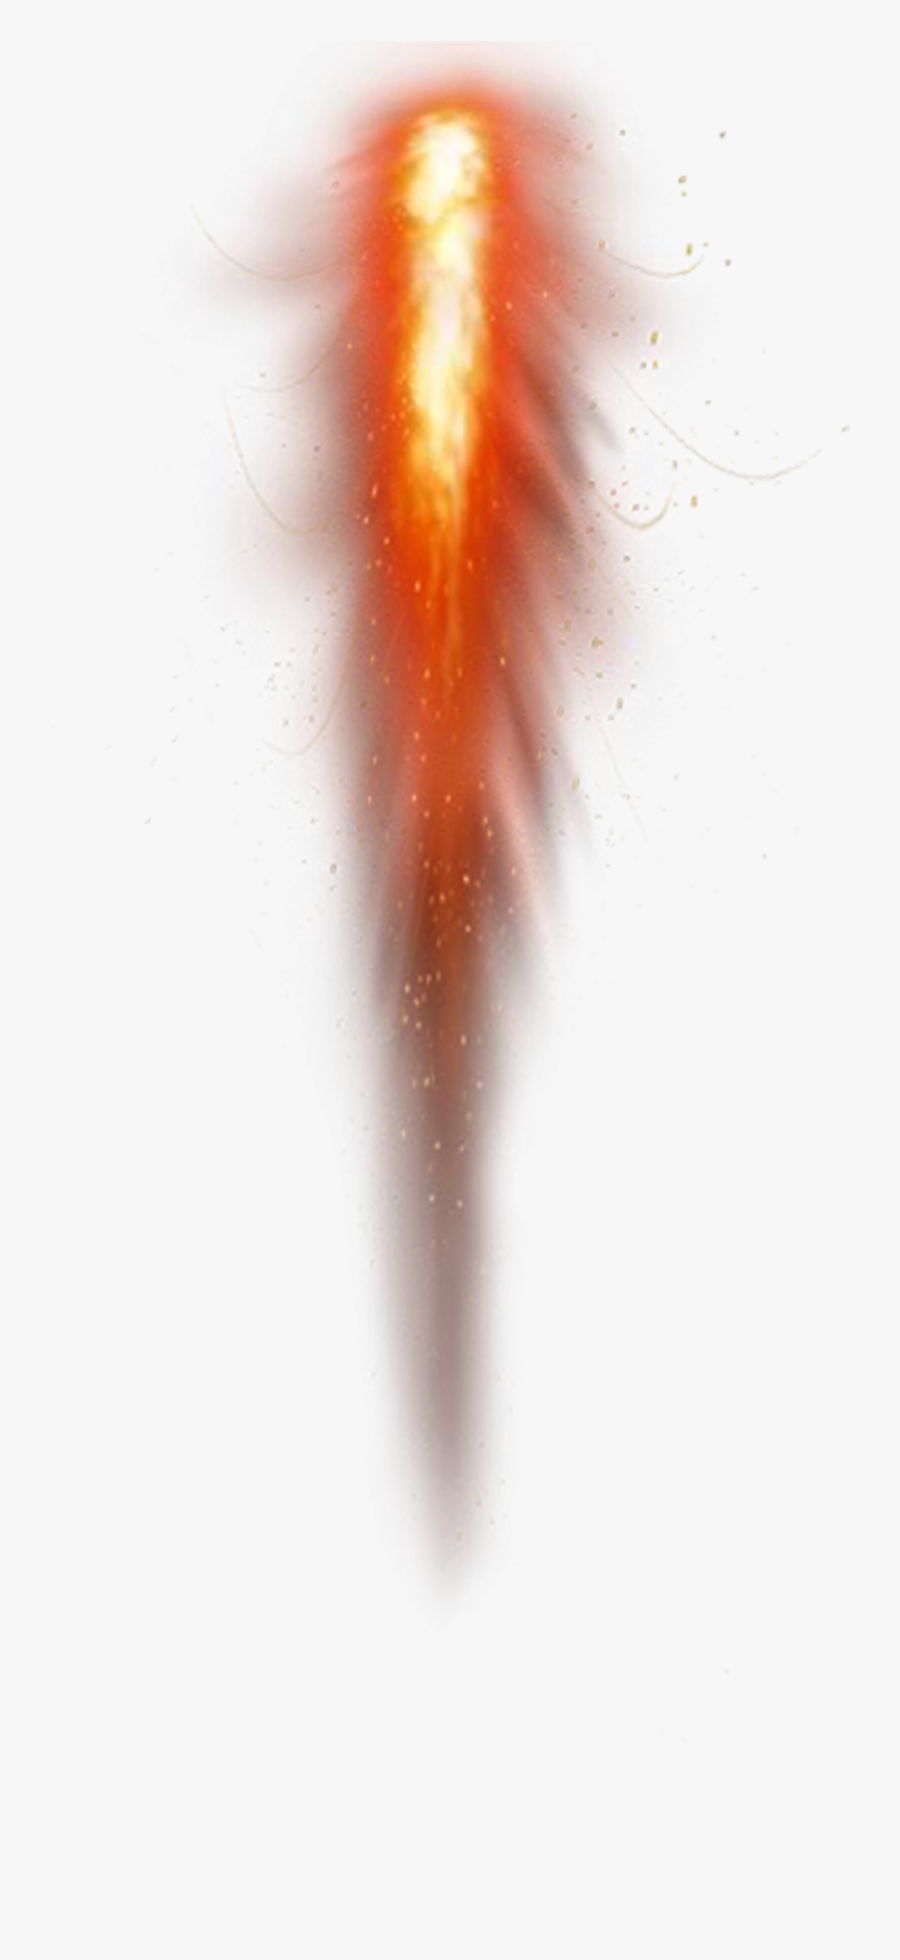 Realistic Fire Png - Macro Photography, Transparent Clipart